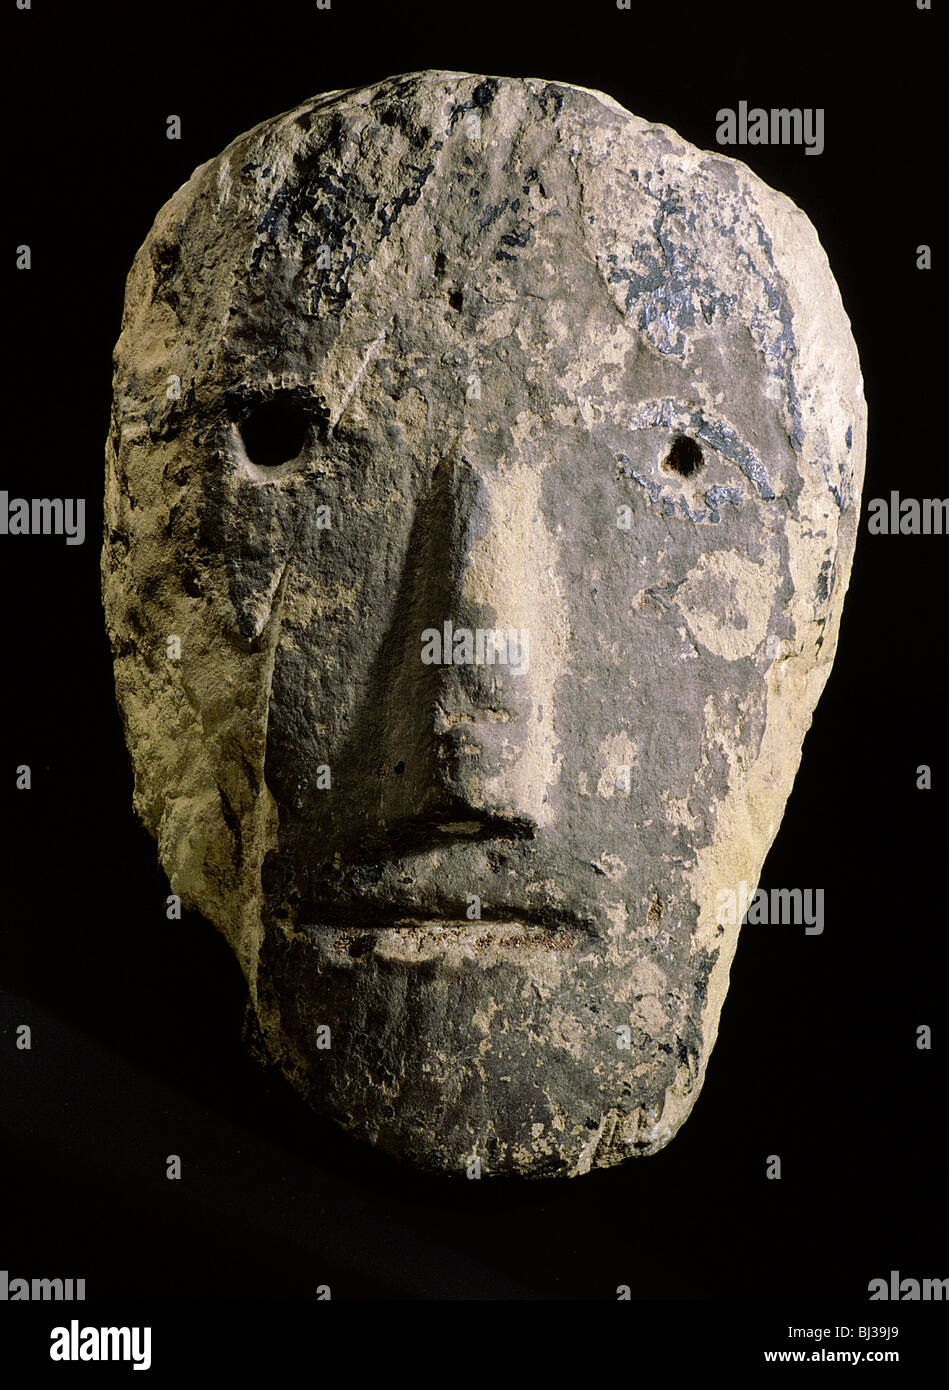 Celtic stone head from south-western England. Artist: Werner Forman - Stock Image